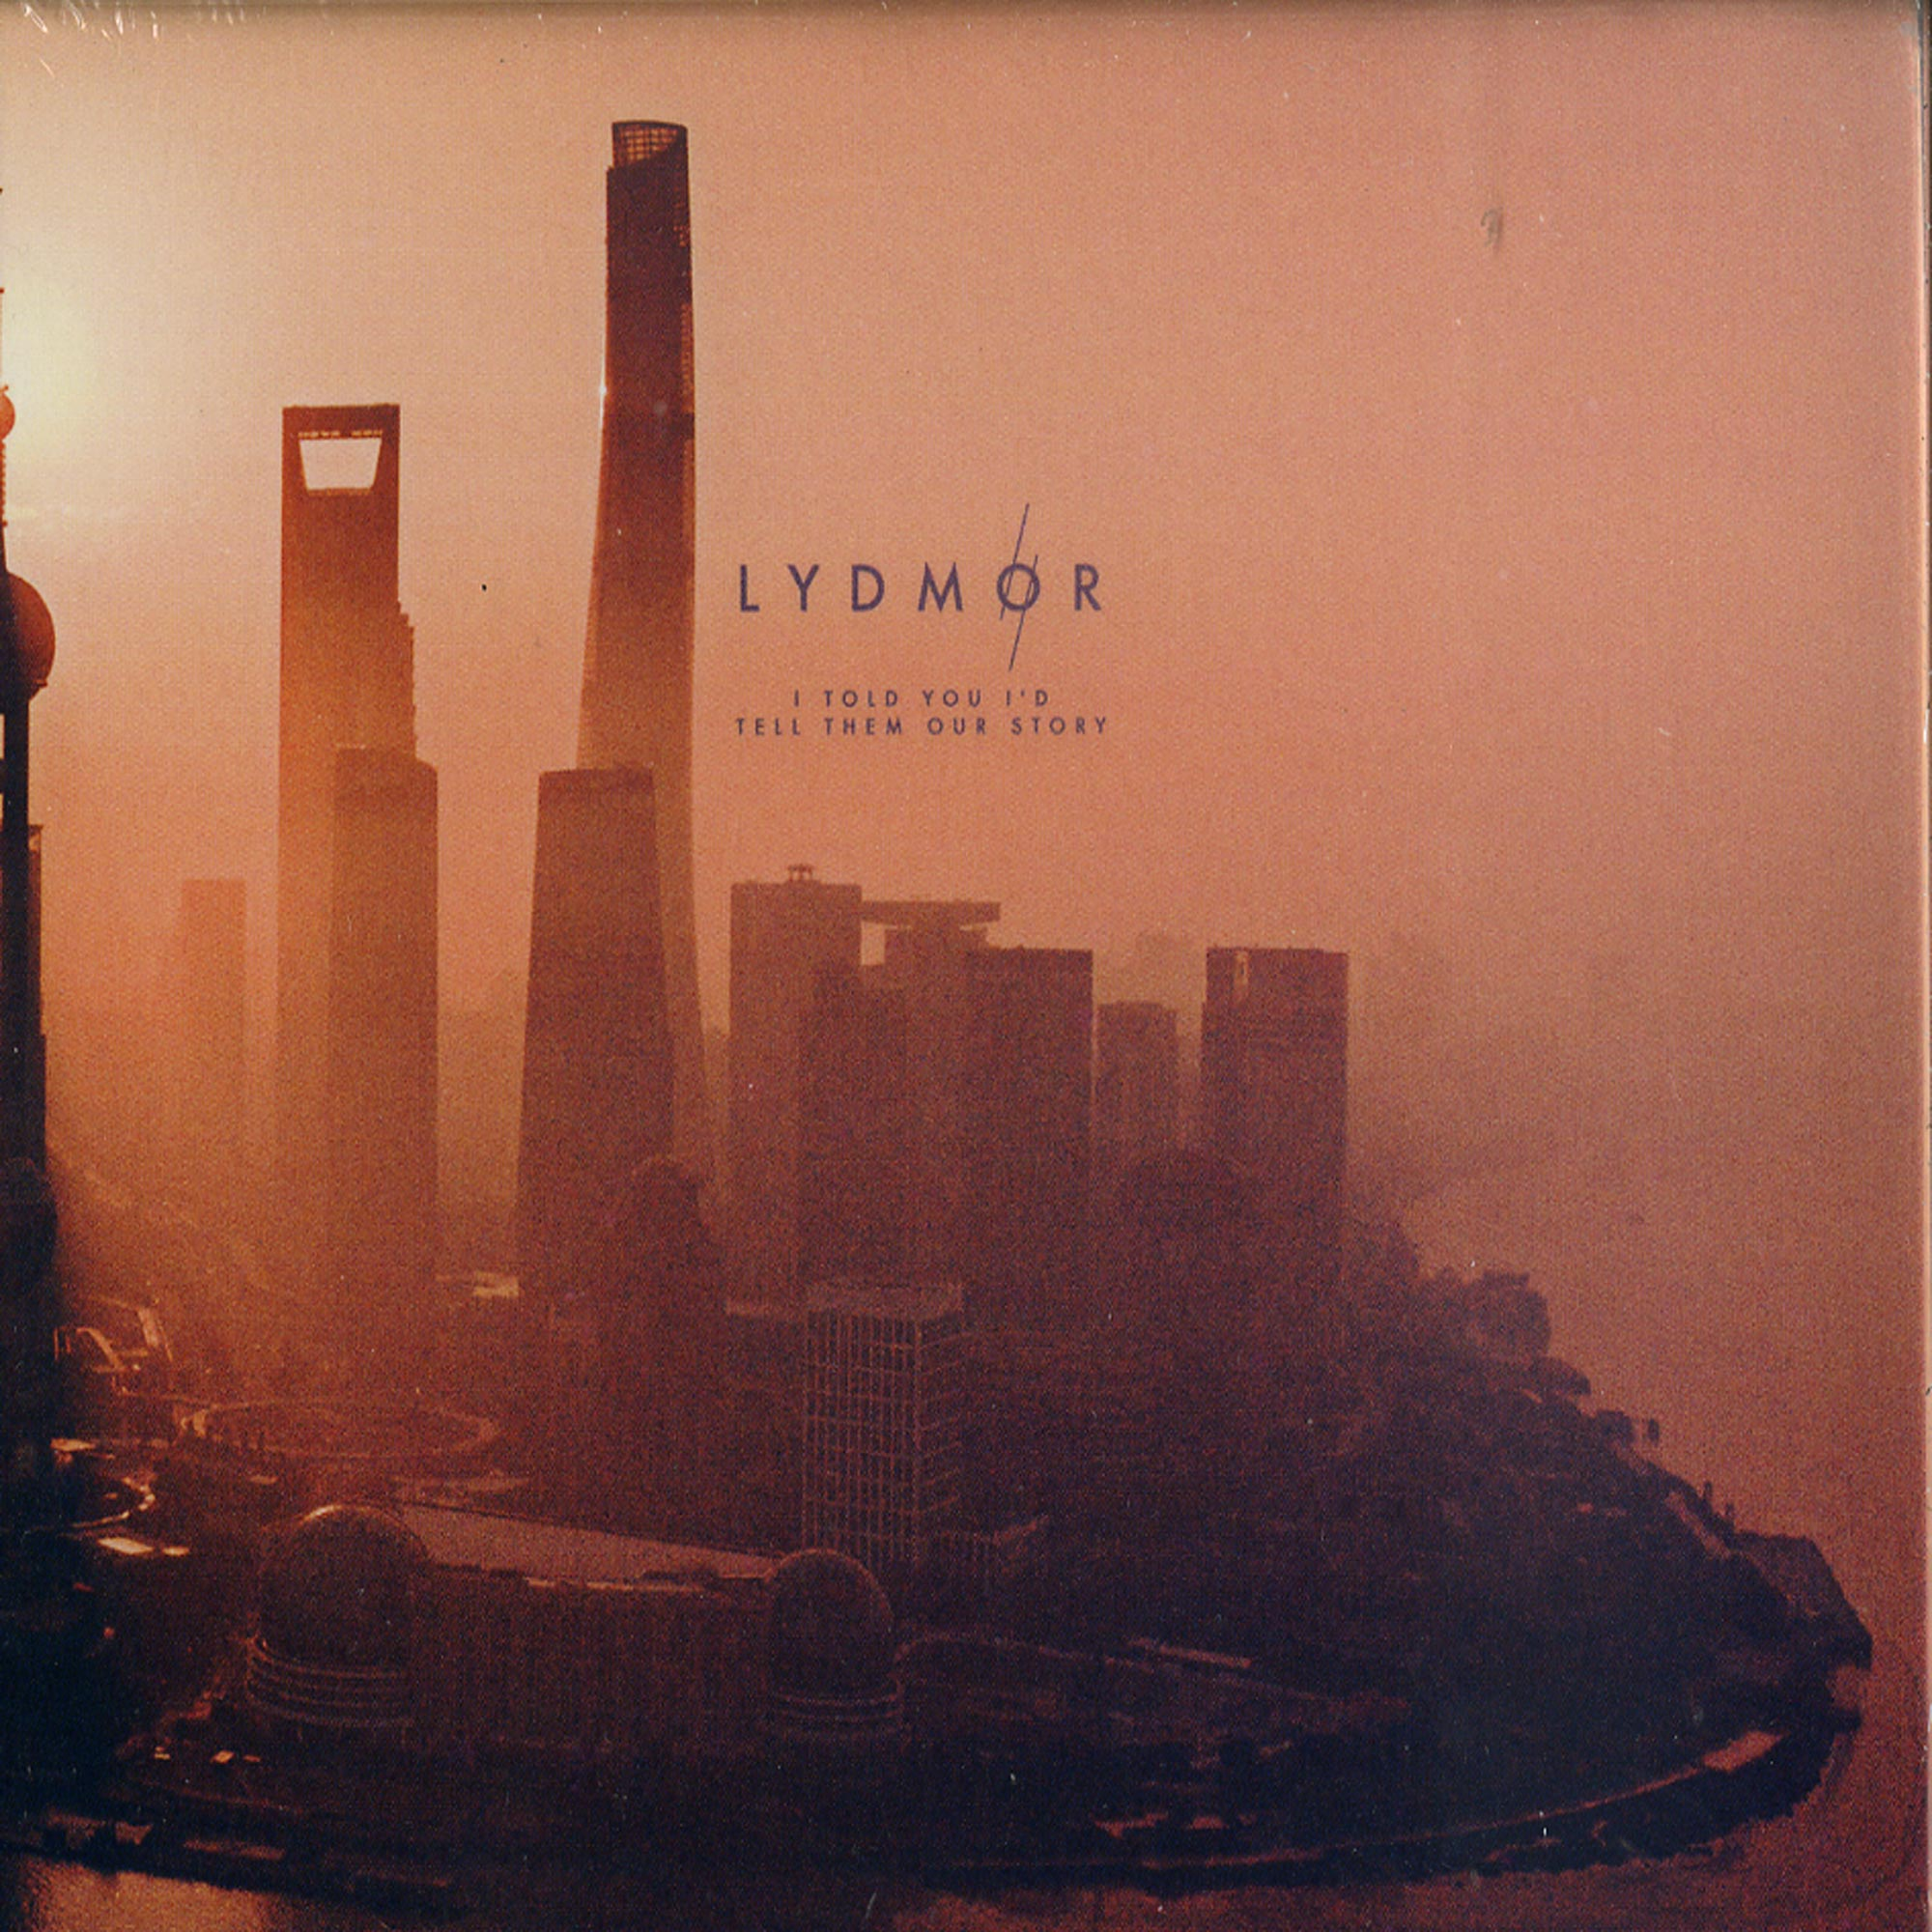 Lydmor - I TOLD YOUID TELL THEM OUR STORY